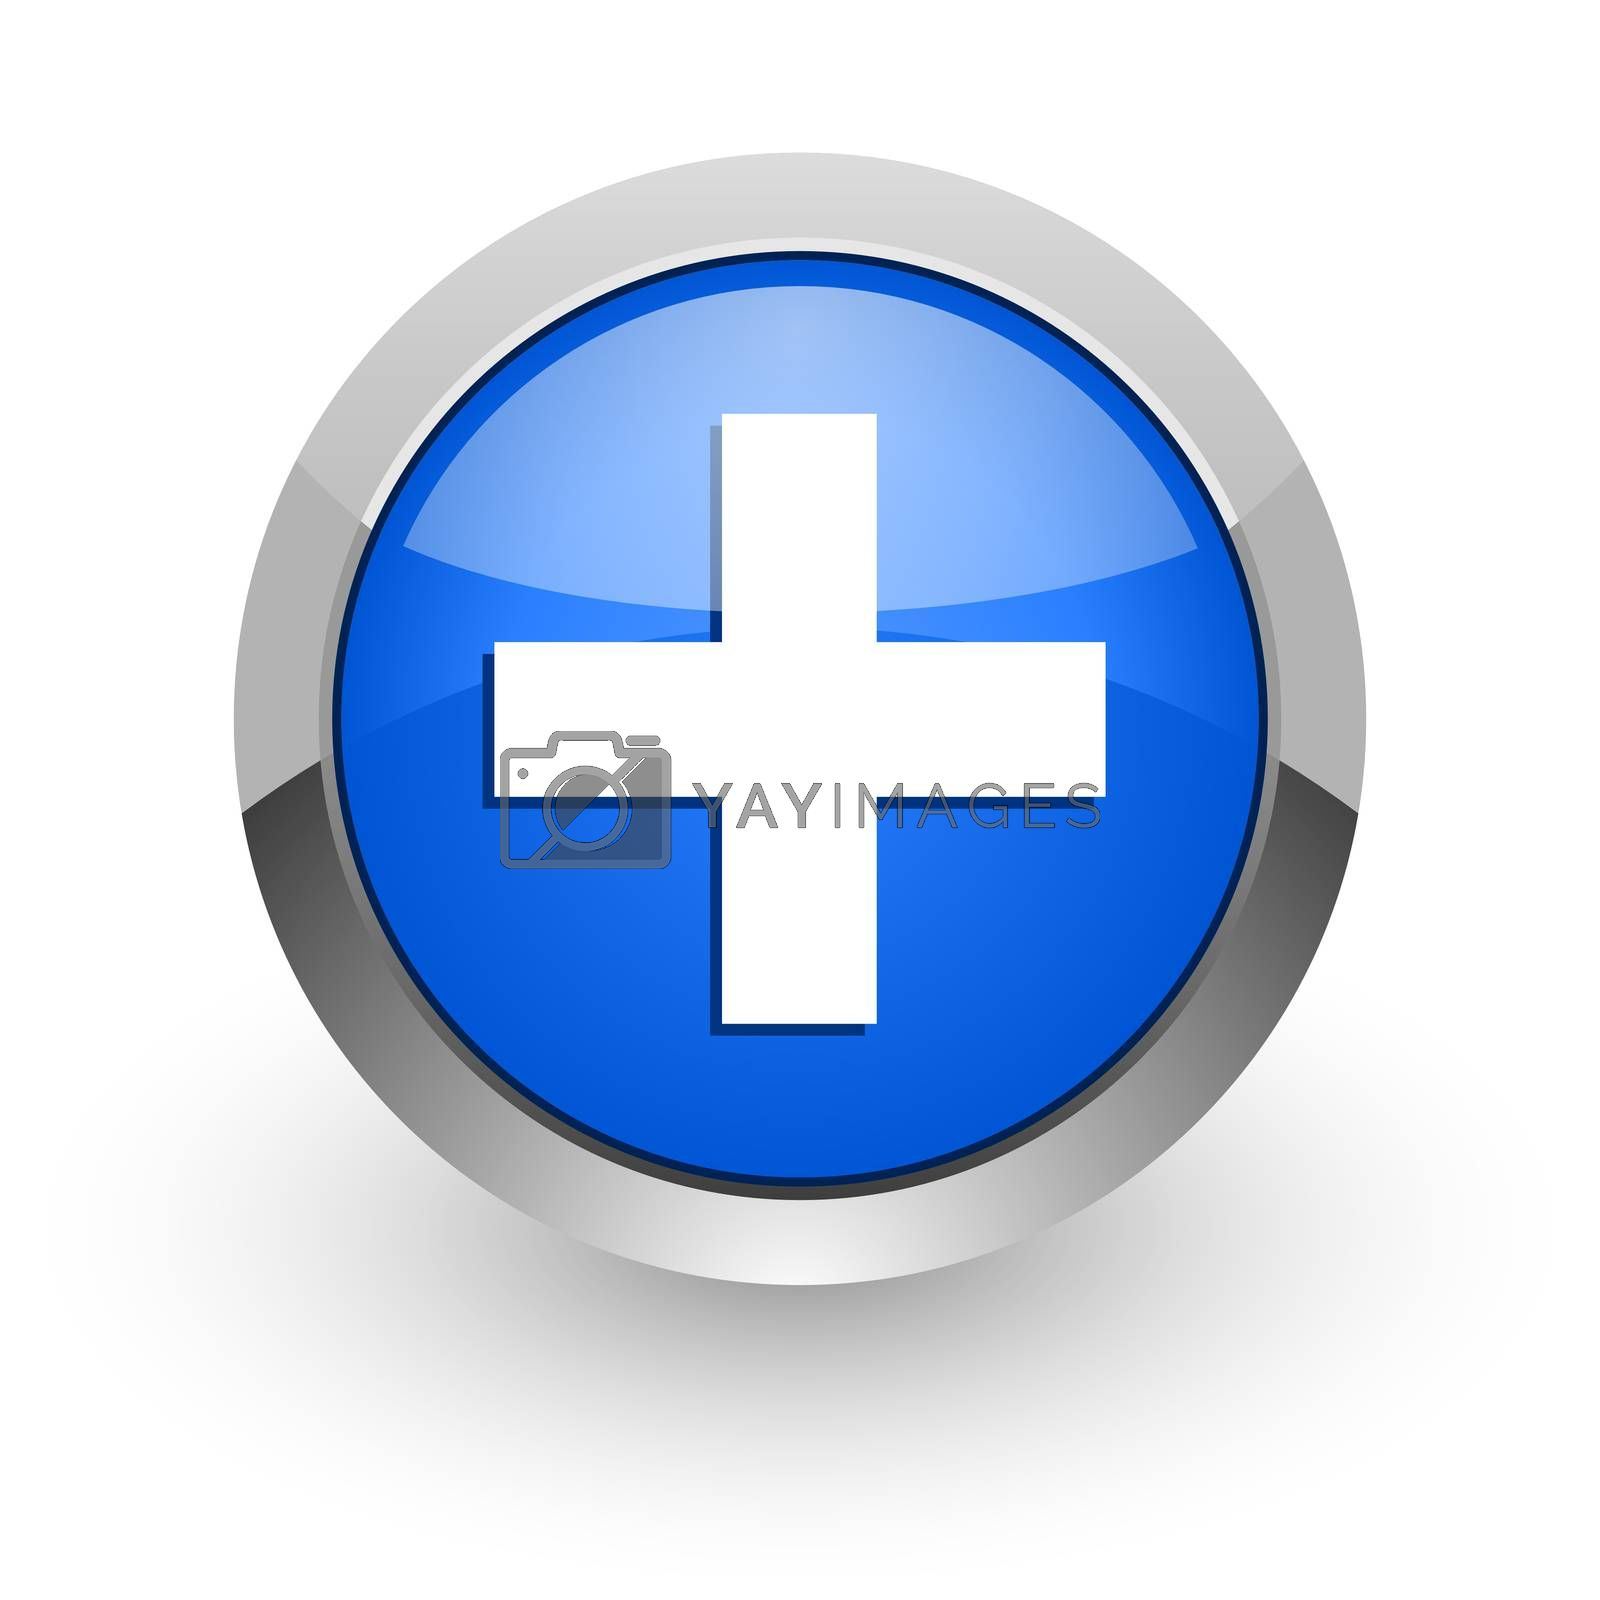 Royalty free image of plus blue glossy web icon by alexwhite